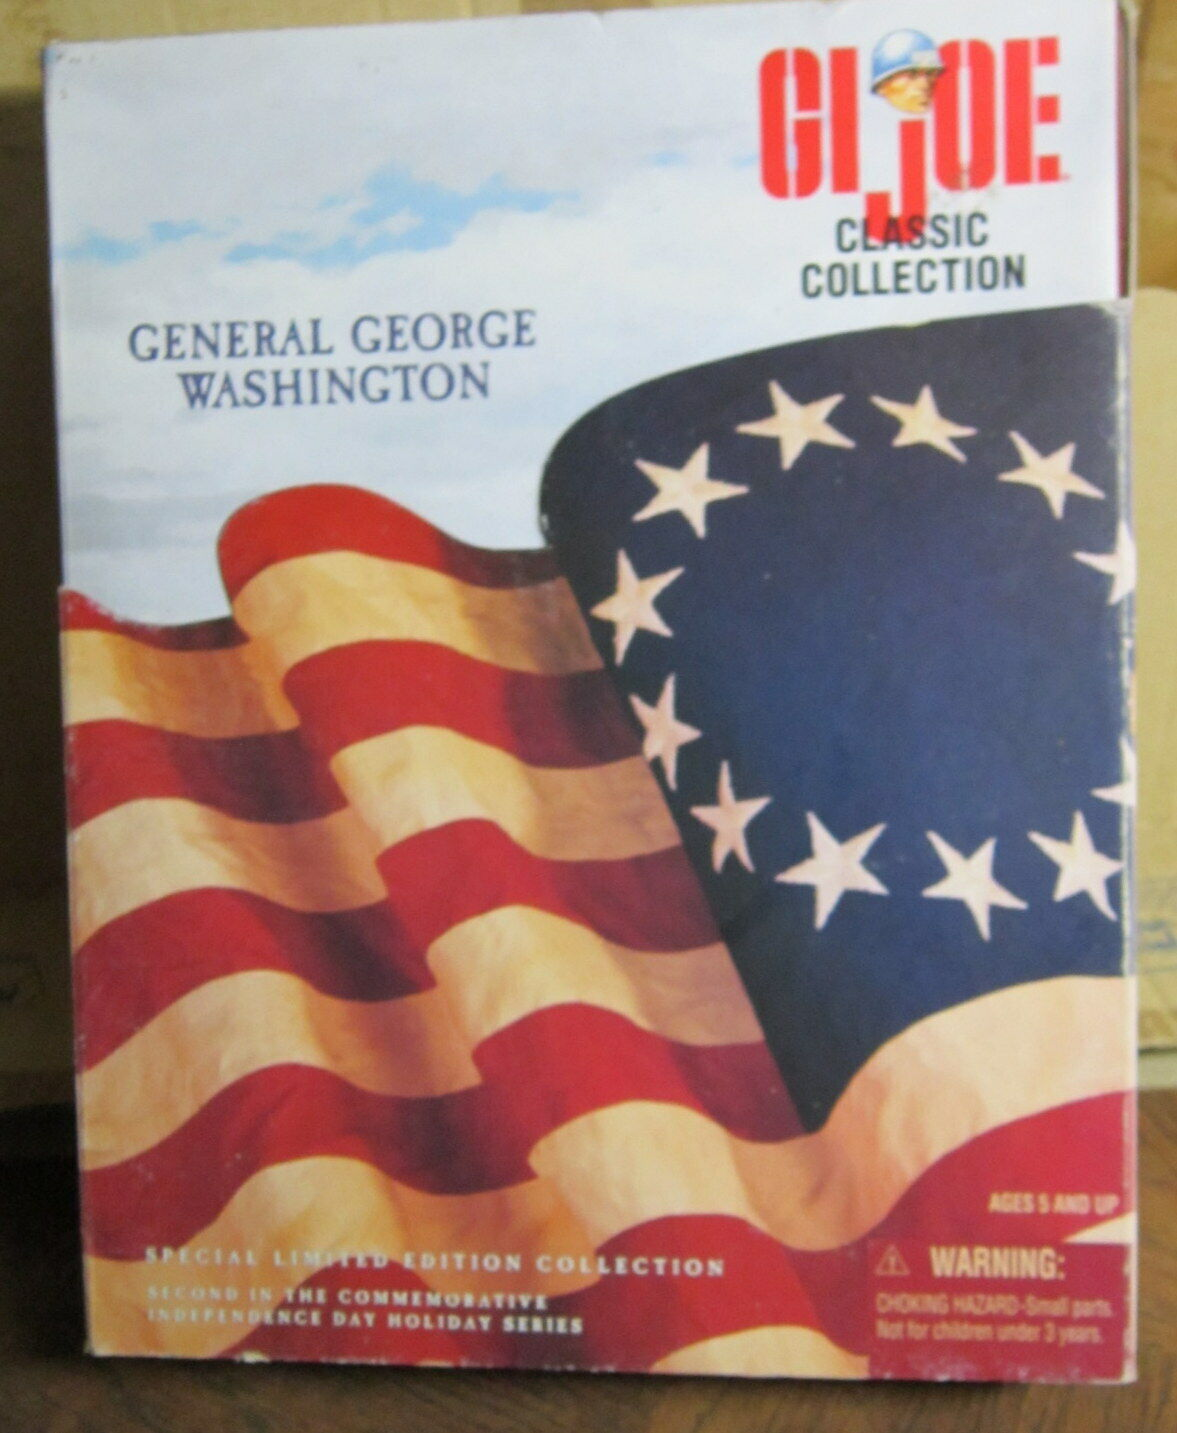 1 6 30cm 12  GI JOE ACTION Uomo GENERAL GEORGES WASHINGTON CLASSIC COLLECTION